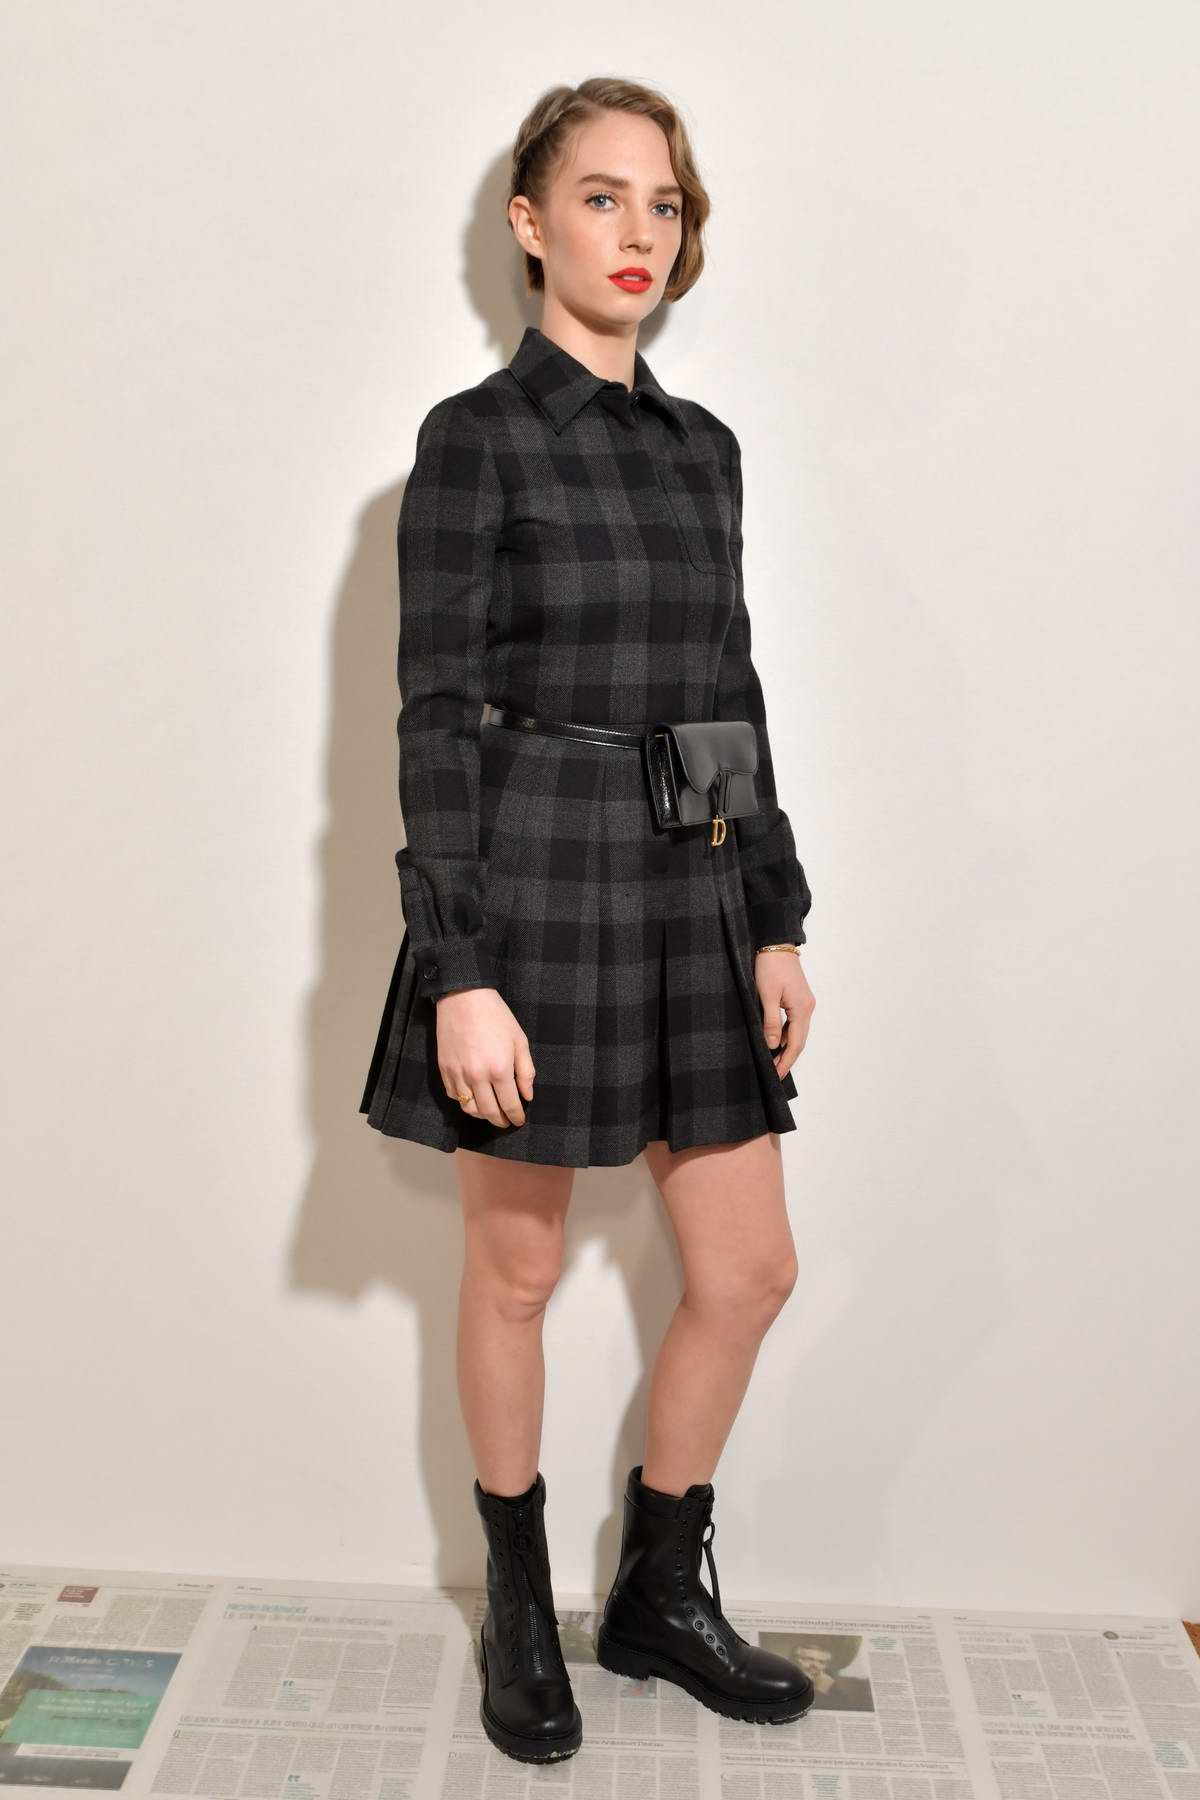 Maya Hawke attends the Dior show, F/W 2020 during Paris Fashion Week in Paris, France